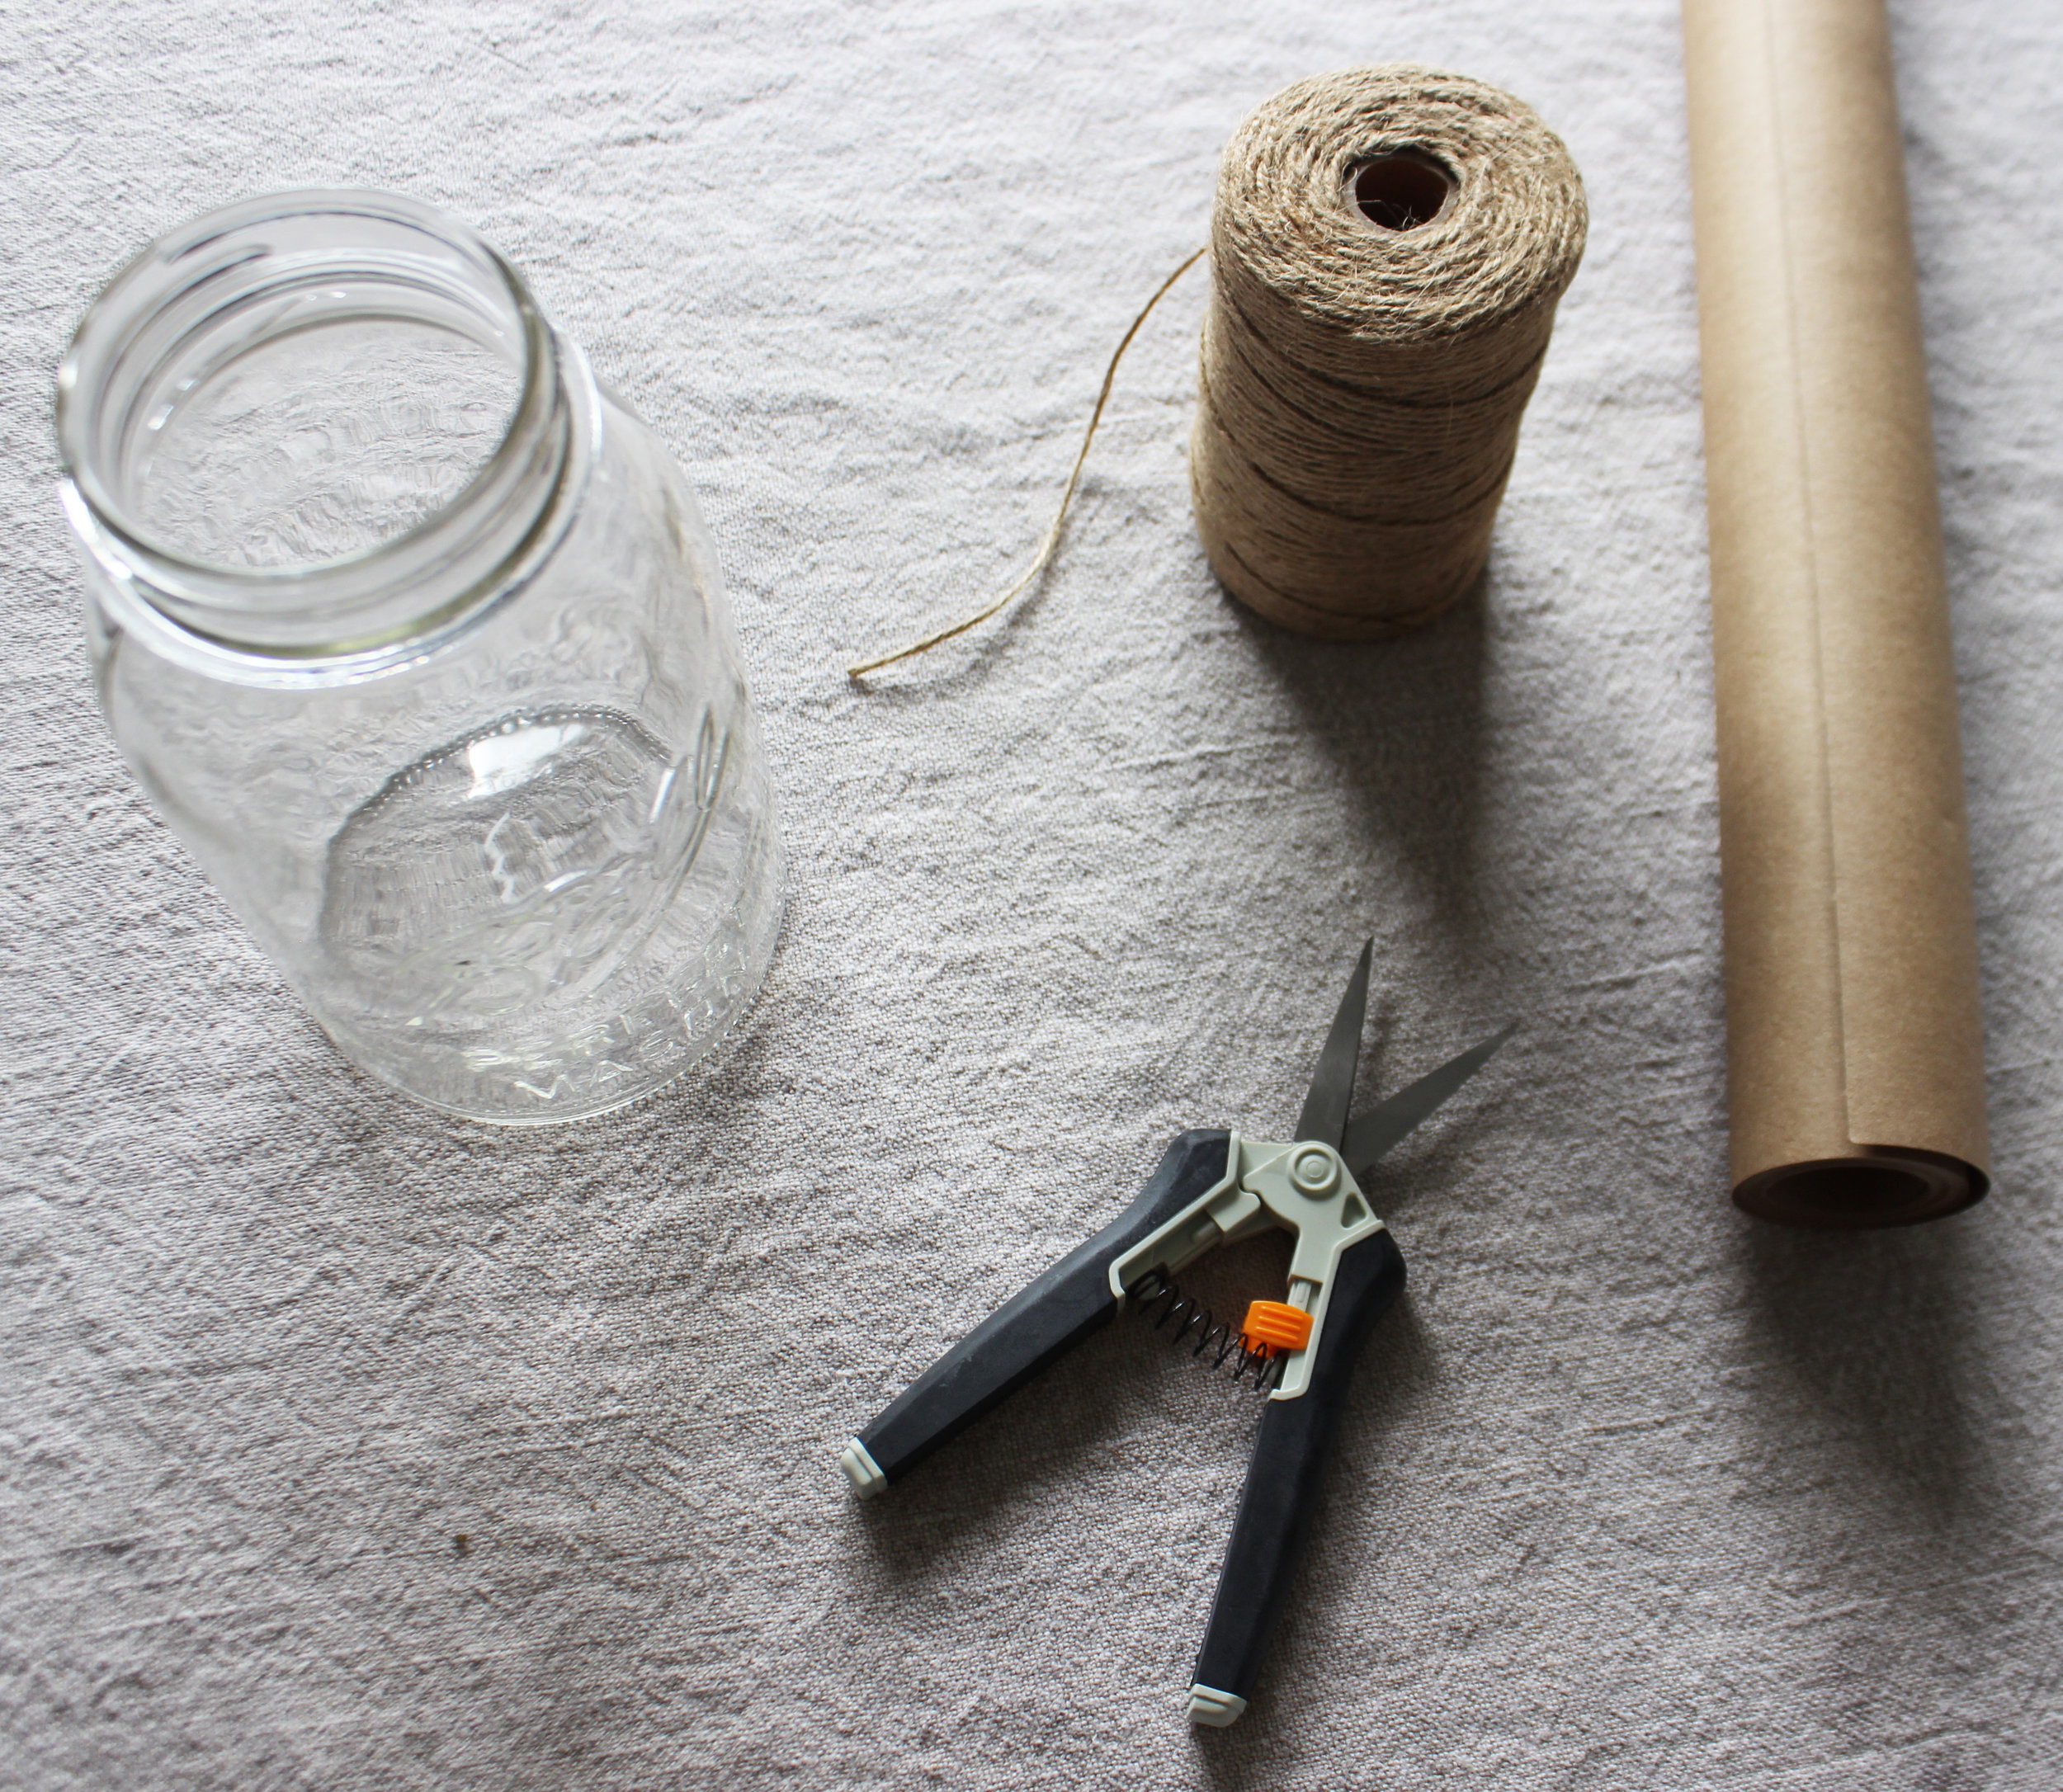 You don't need many supplies but you will need snips (scissors or knife will do in a pinch), brown kraft paper and twine (if gifting) or a receptacle (tall vase, mason jar, pitcher). I collect bottles and jars so I just used a medium sized mason jar that I already had.